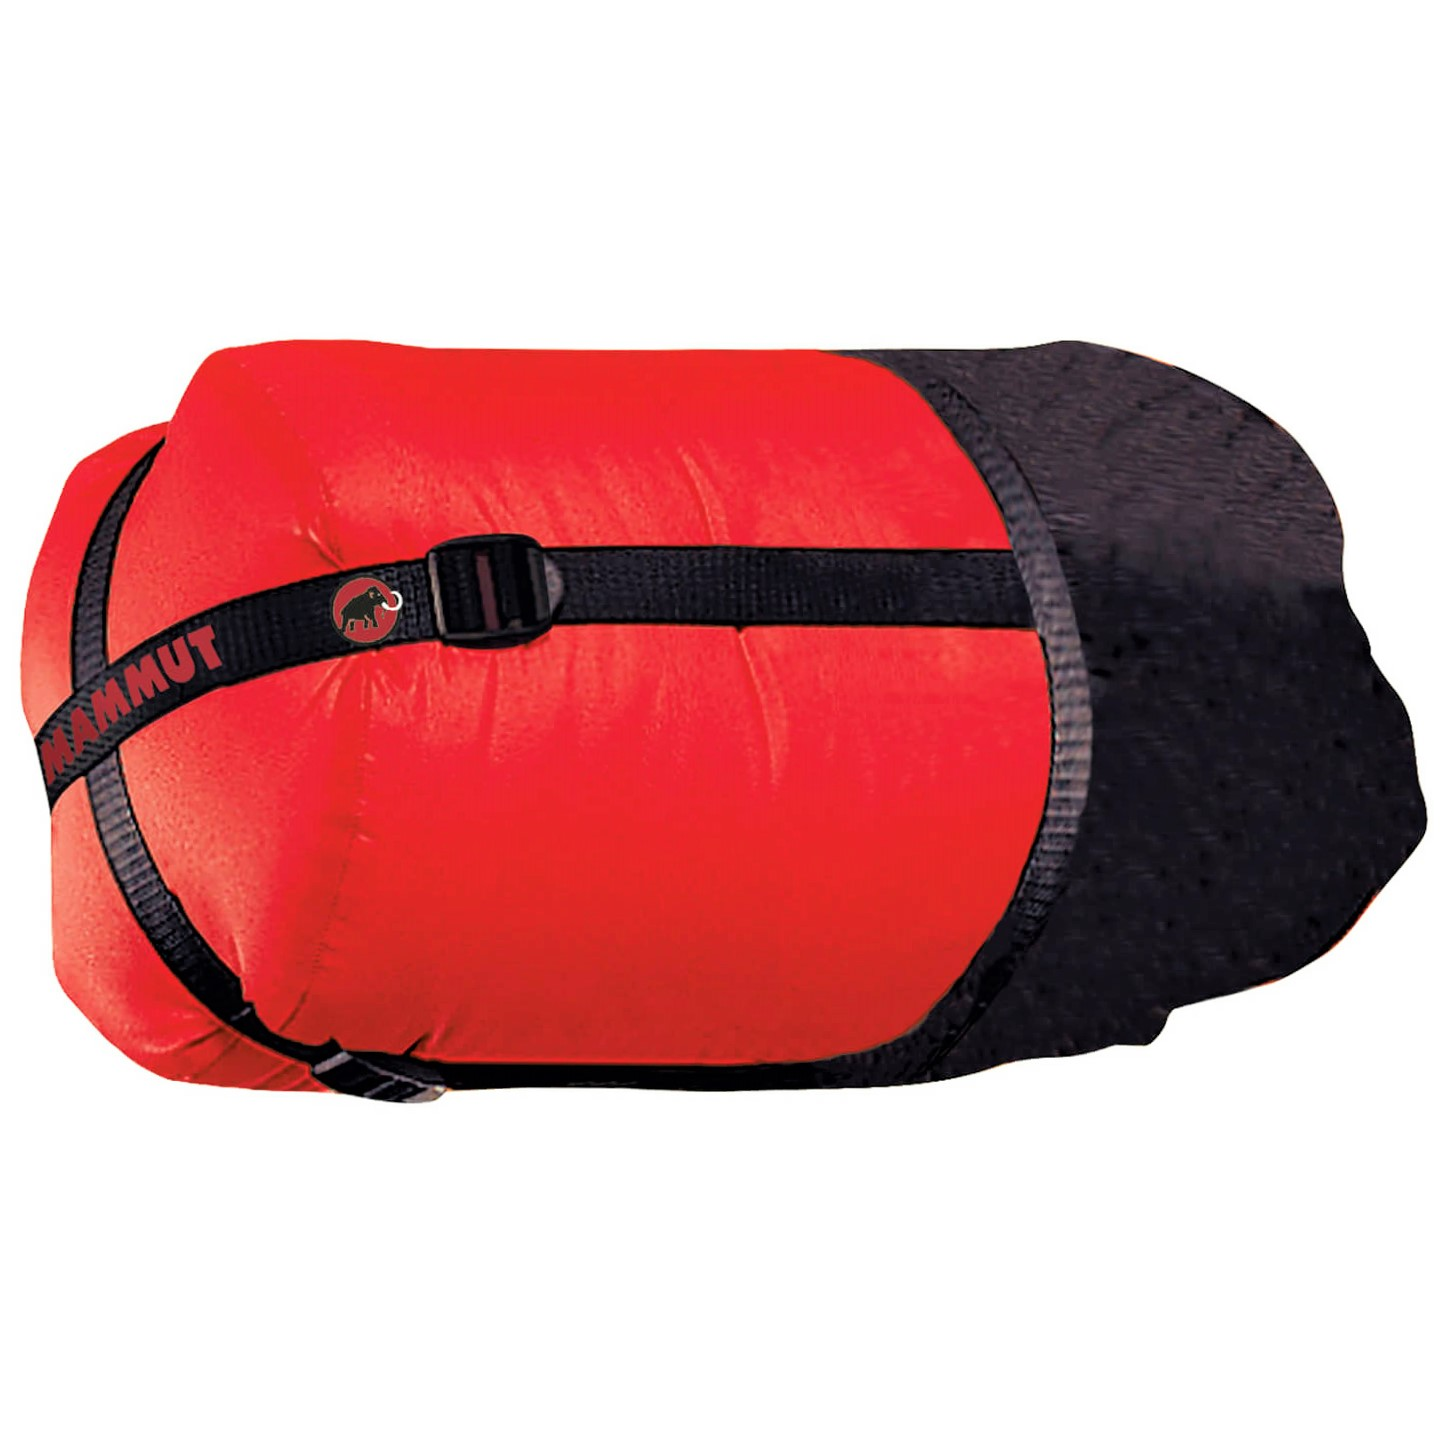 super popular usa cheap sale clearance prices Sleeping Bag Mammut KOMPAKT MTI SPRING TRAVELLER 195cm ...